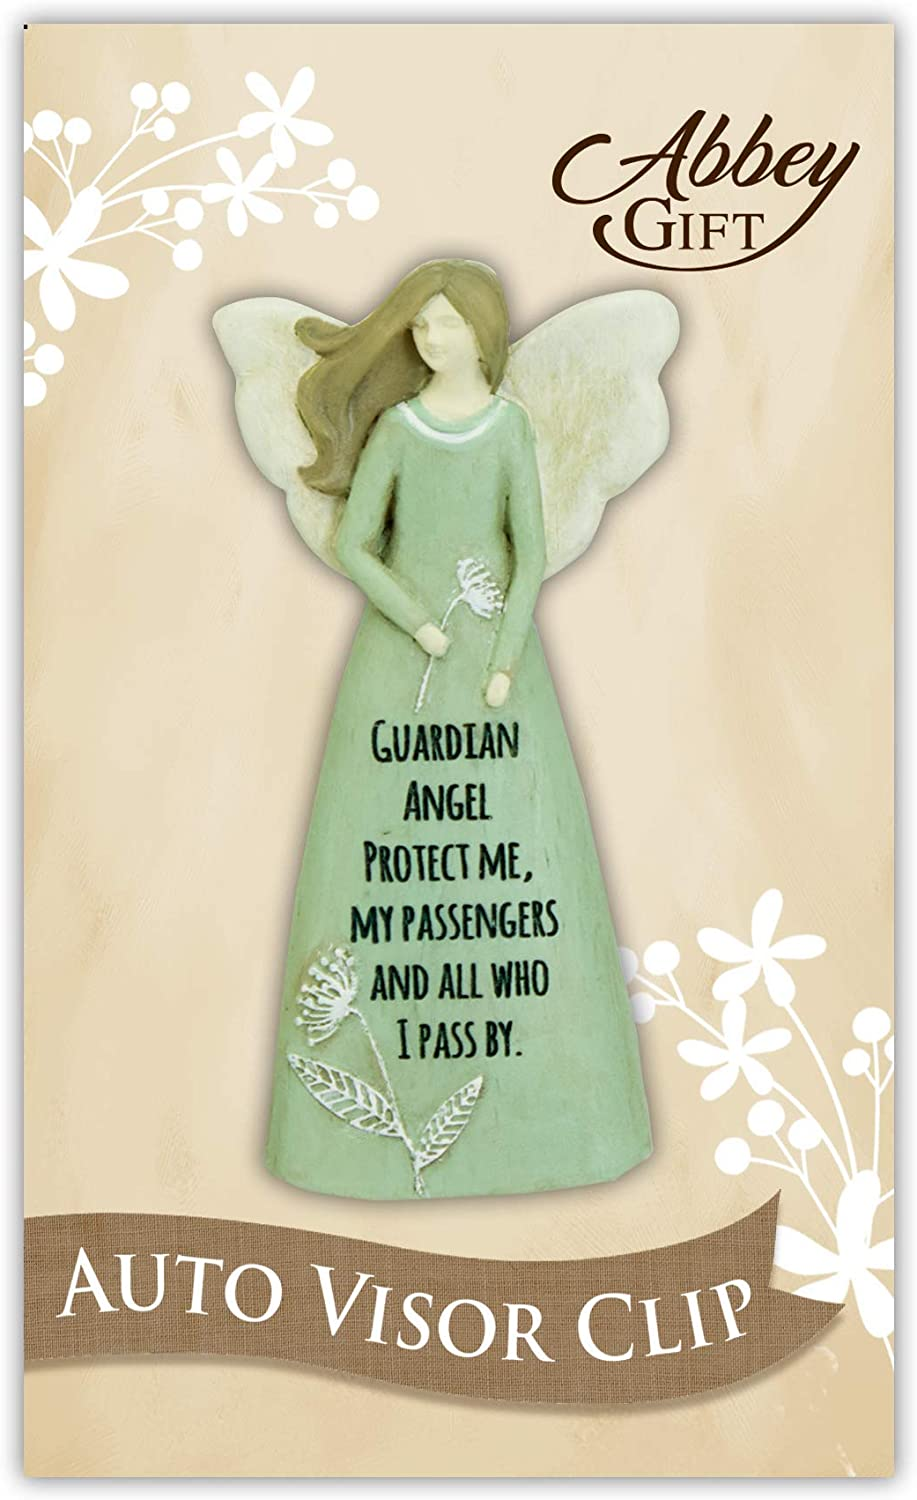 Multi Abbey Gift 3.5 Protect Me Sculpted Guardian Angel Carded /& Boxed Visor Clip